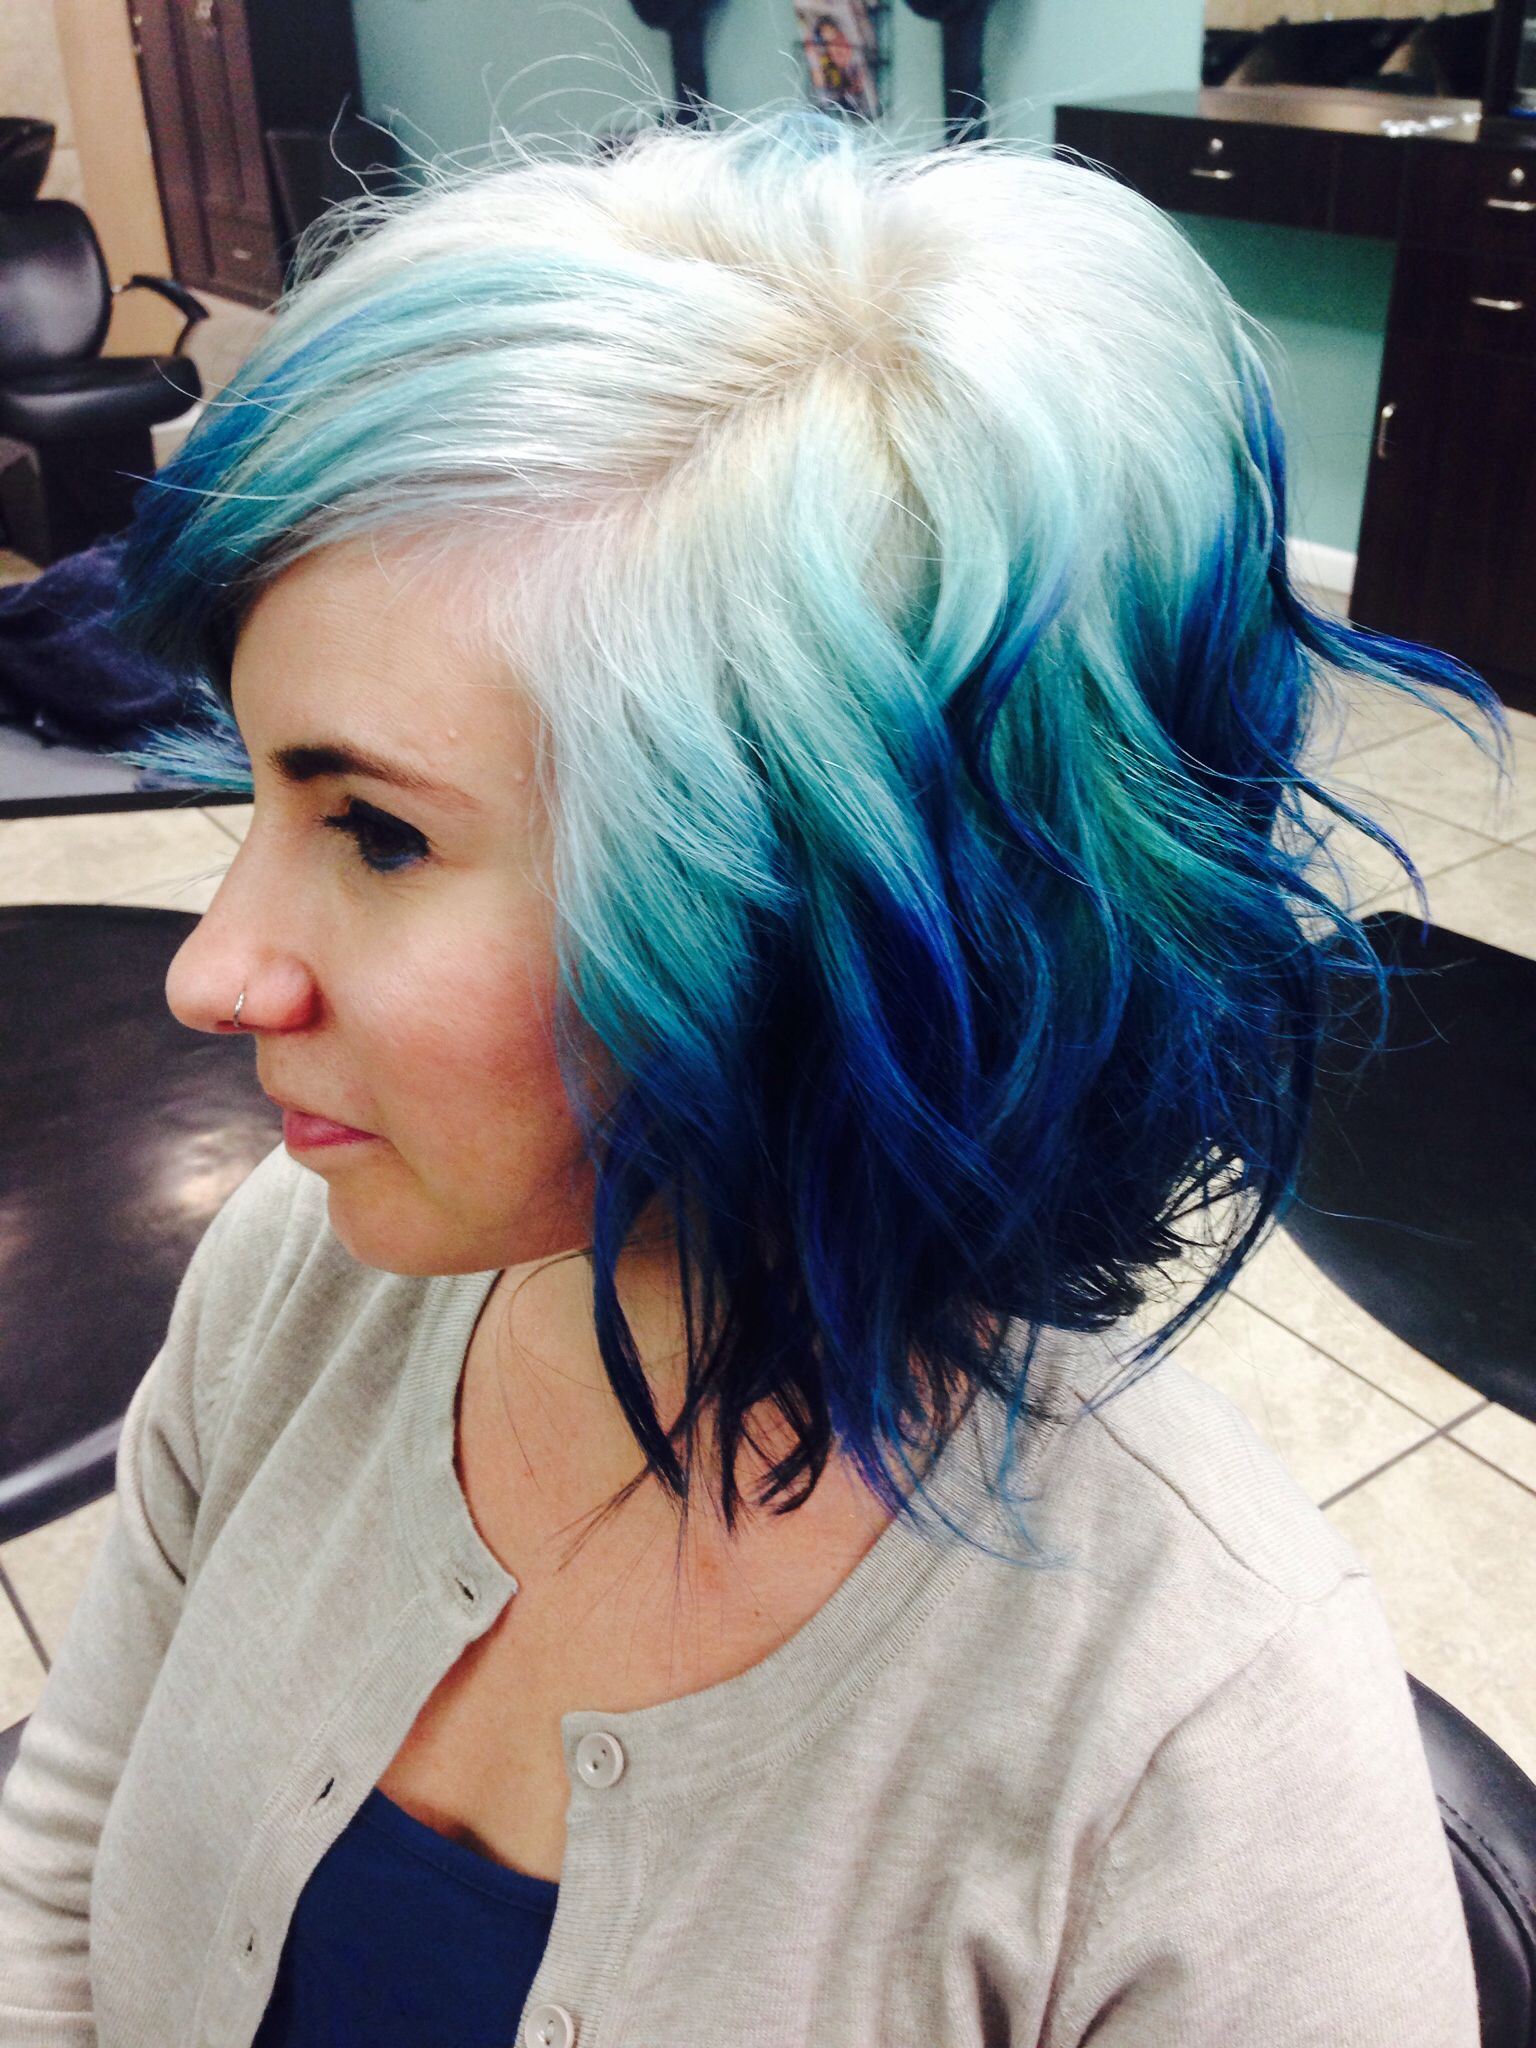 Pravana Blue Ombre On A Short Bob By Jaymi Wilson In The Bay Area California With Red Hair Ombre Hair Color Short Ombre Hair Hair Styles